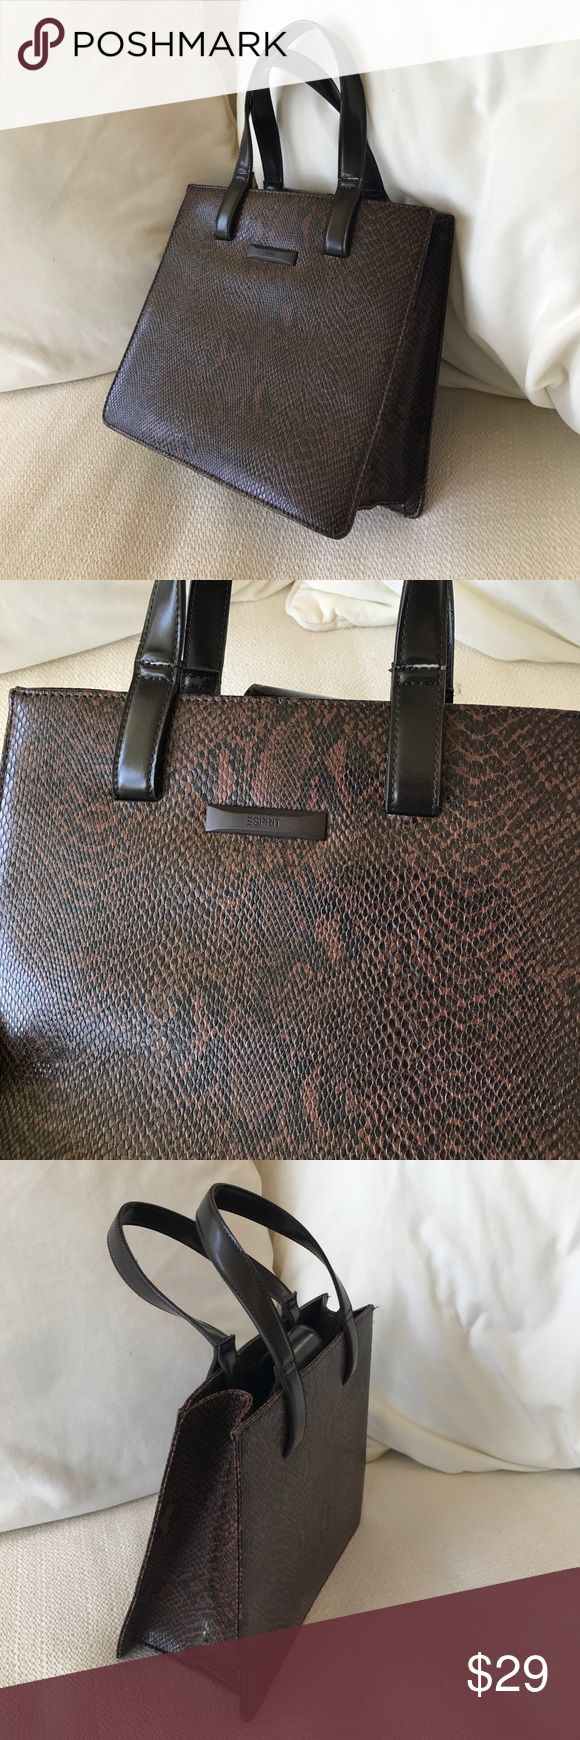 "Espirit brown snakeskin bag Like new vintage boxy structures handbag. So classy and cute!  Brown and black print with lined interior and zipper pocket. Approx size is 9x9"" and 4 inch depth. Esprit Bags"